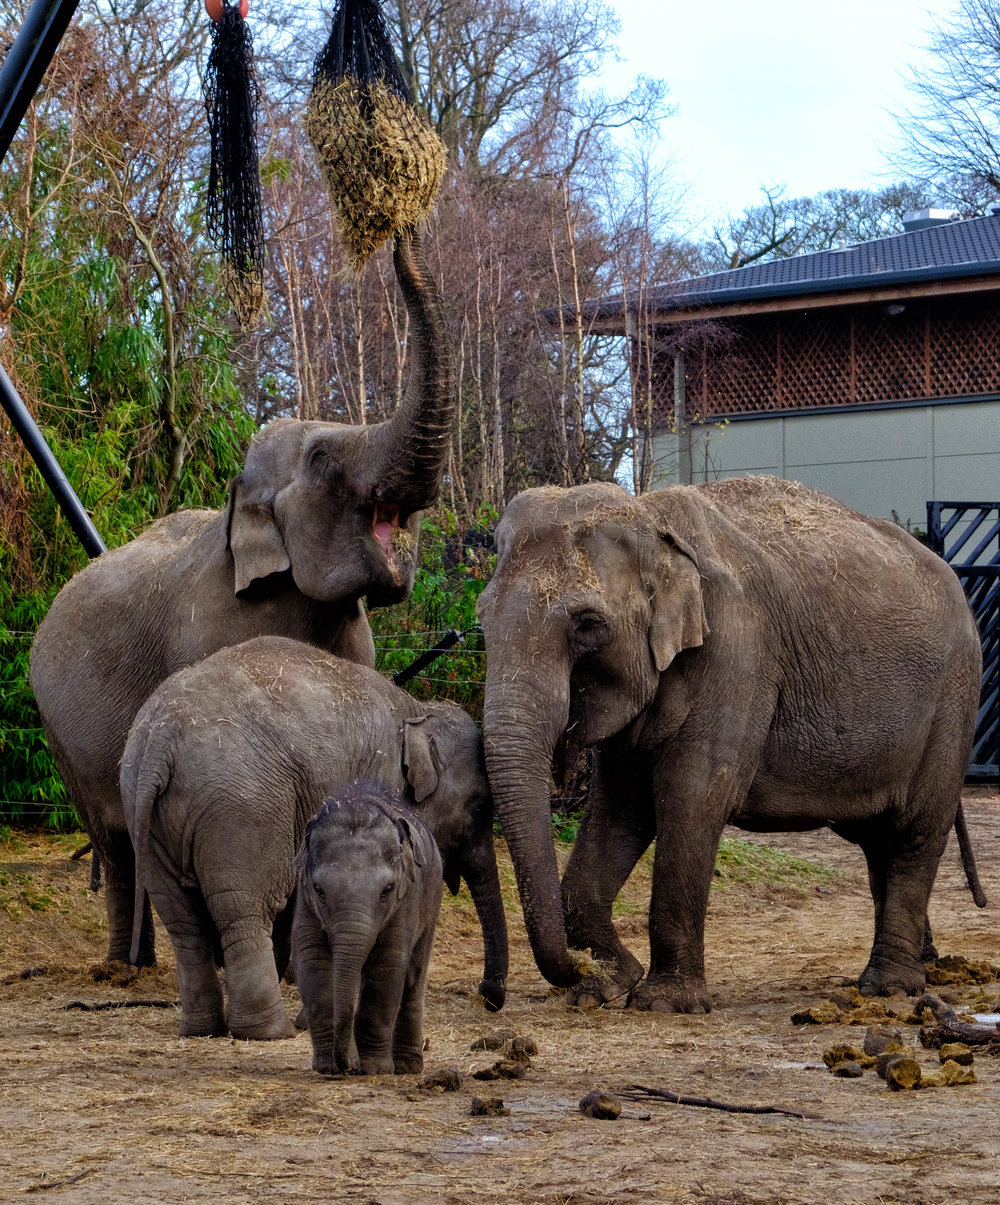 25 January 2018 Dublin Zoo Elephants 1-2.jpg